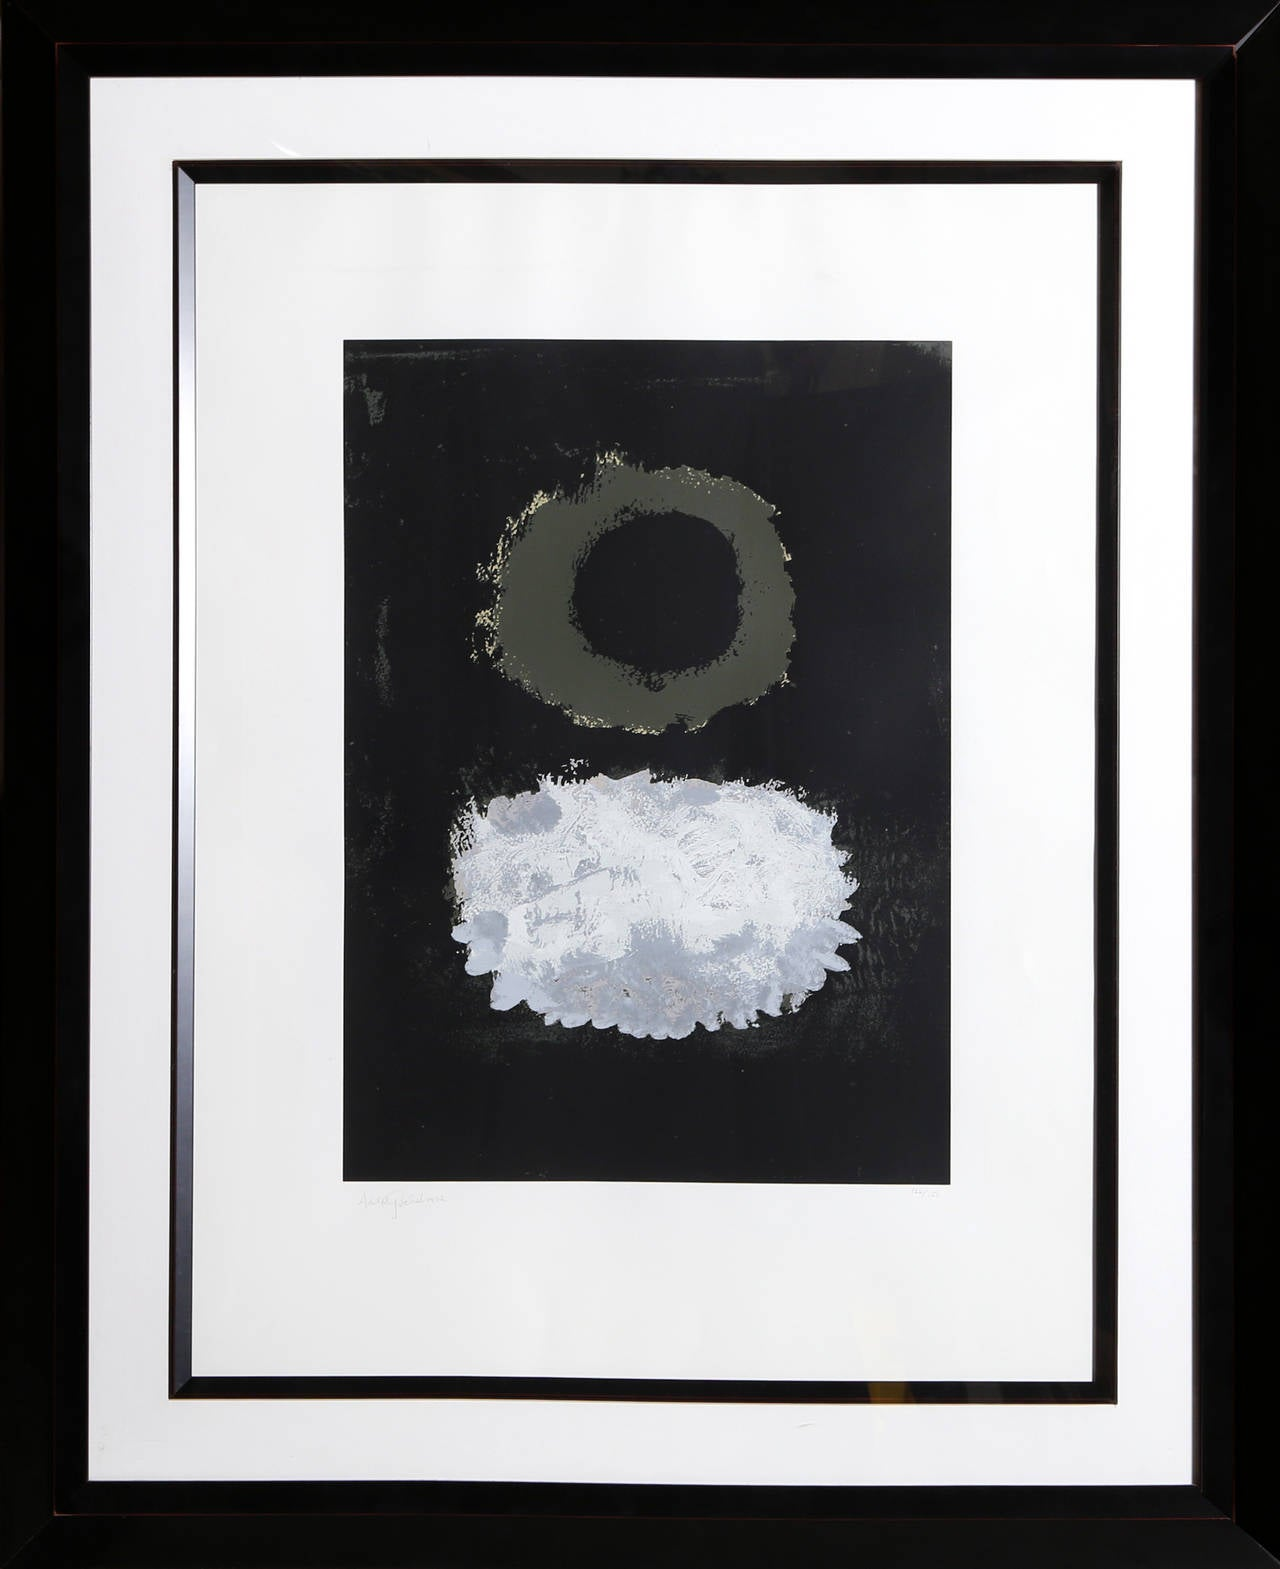 Black Field, Abstract Expressionist Silkscreen by Adolph Gottlieb 1972